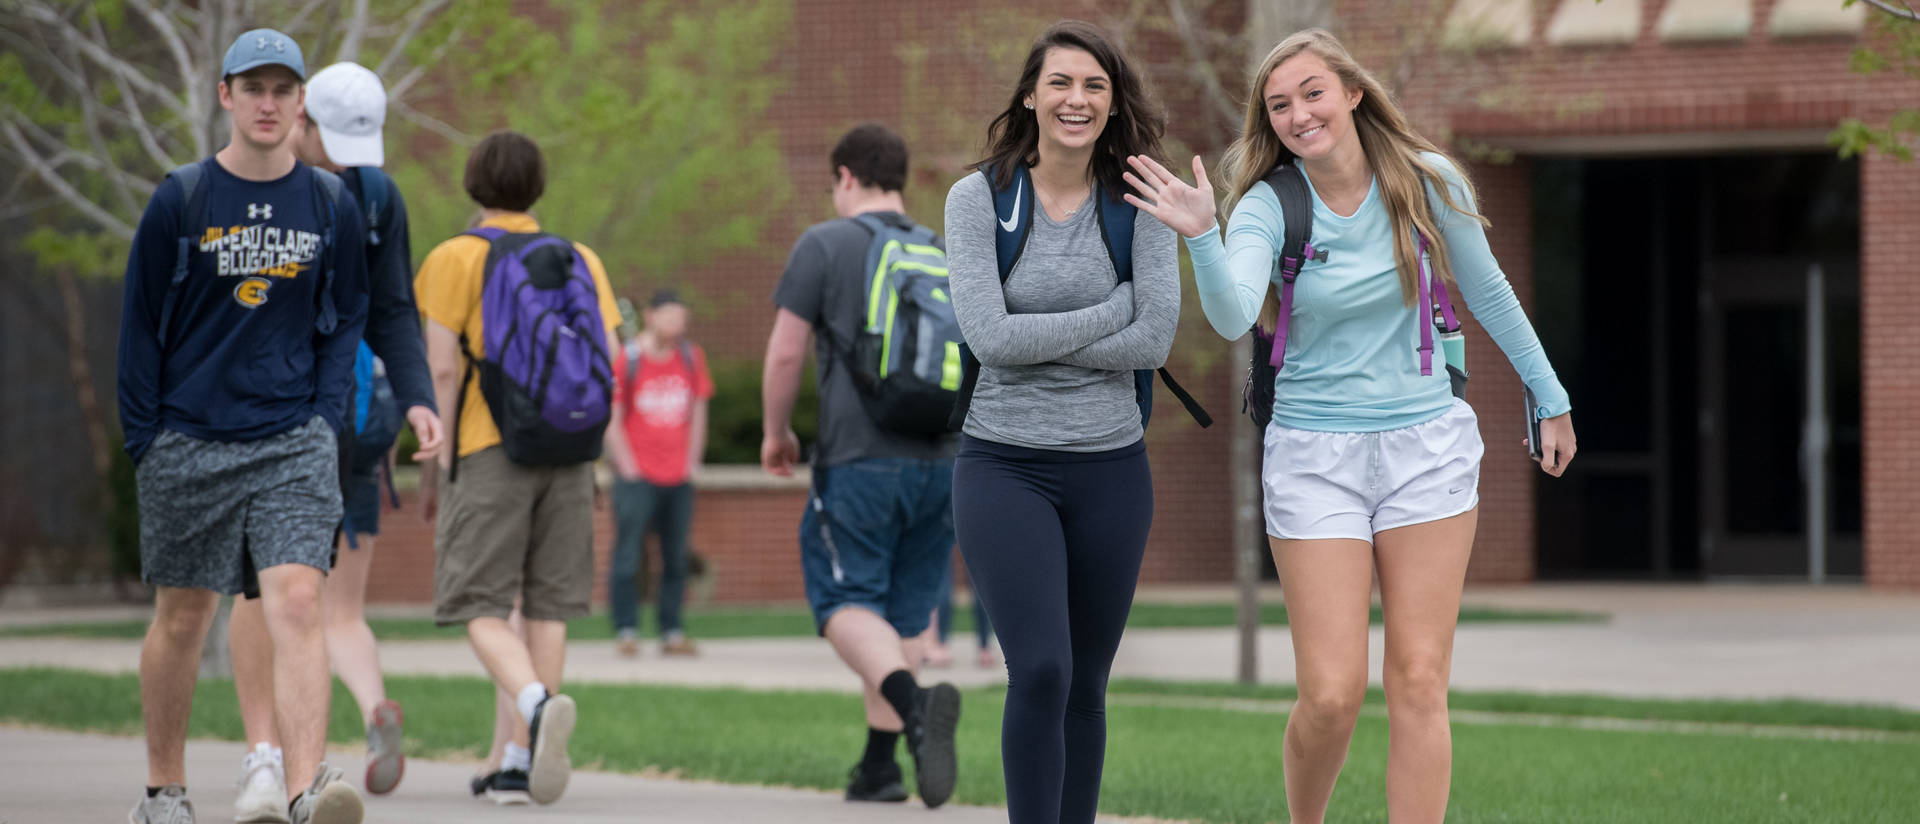 female student waving at the camera on campus mall